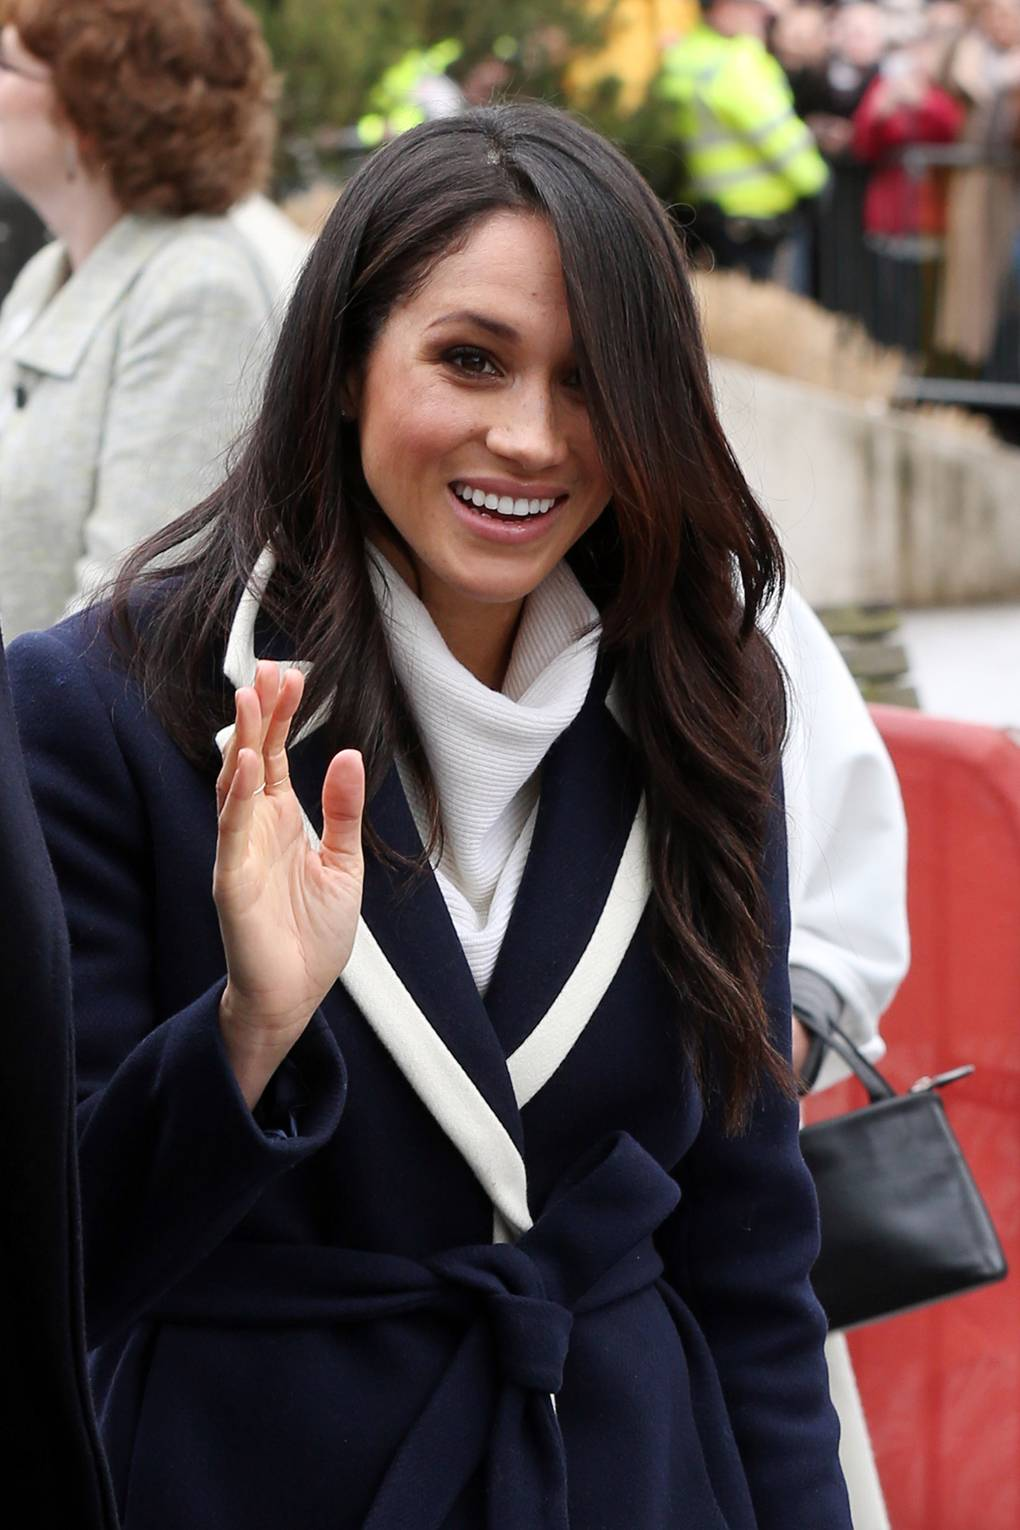 Meghan Markle Hair Makeup Looks Shes A Natural Beauty Glamour Uk